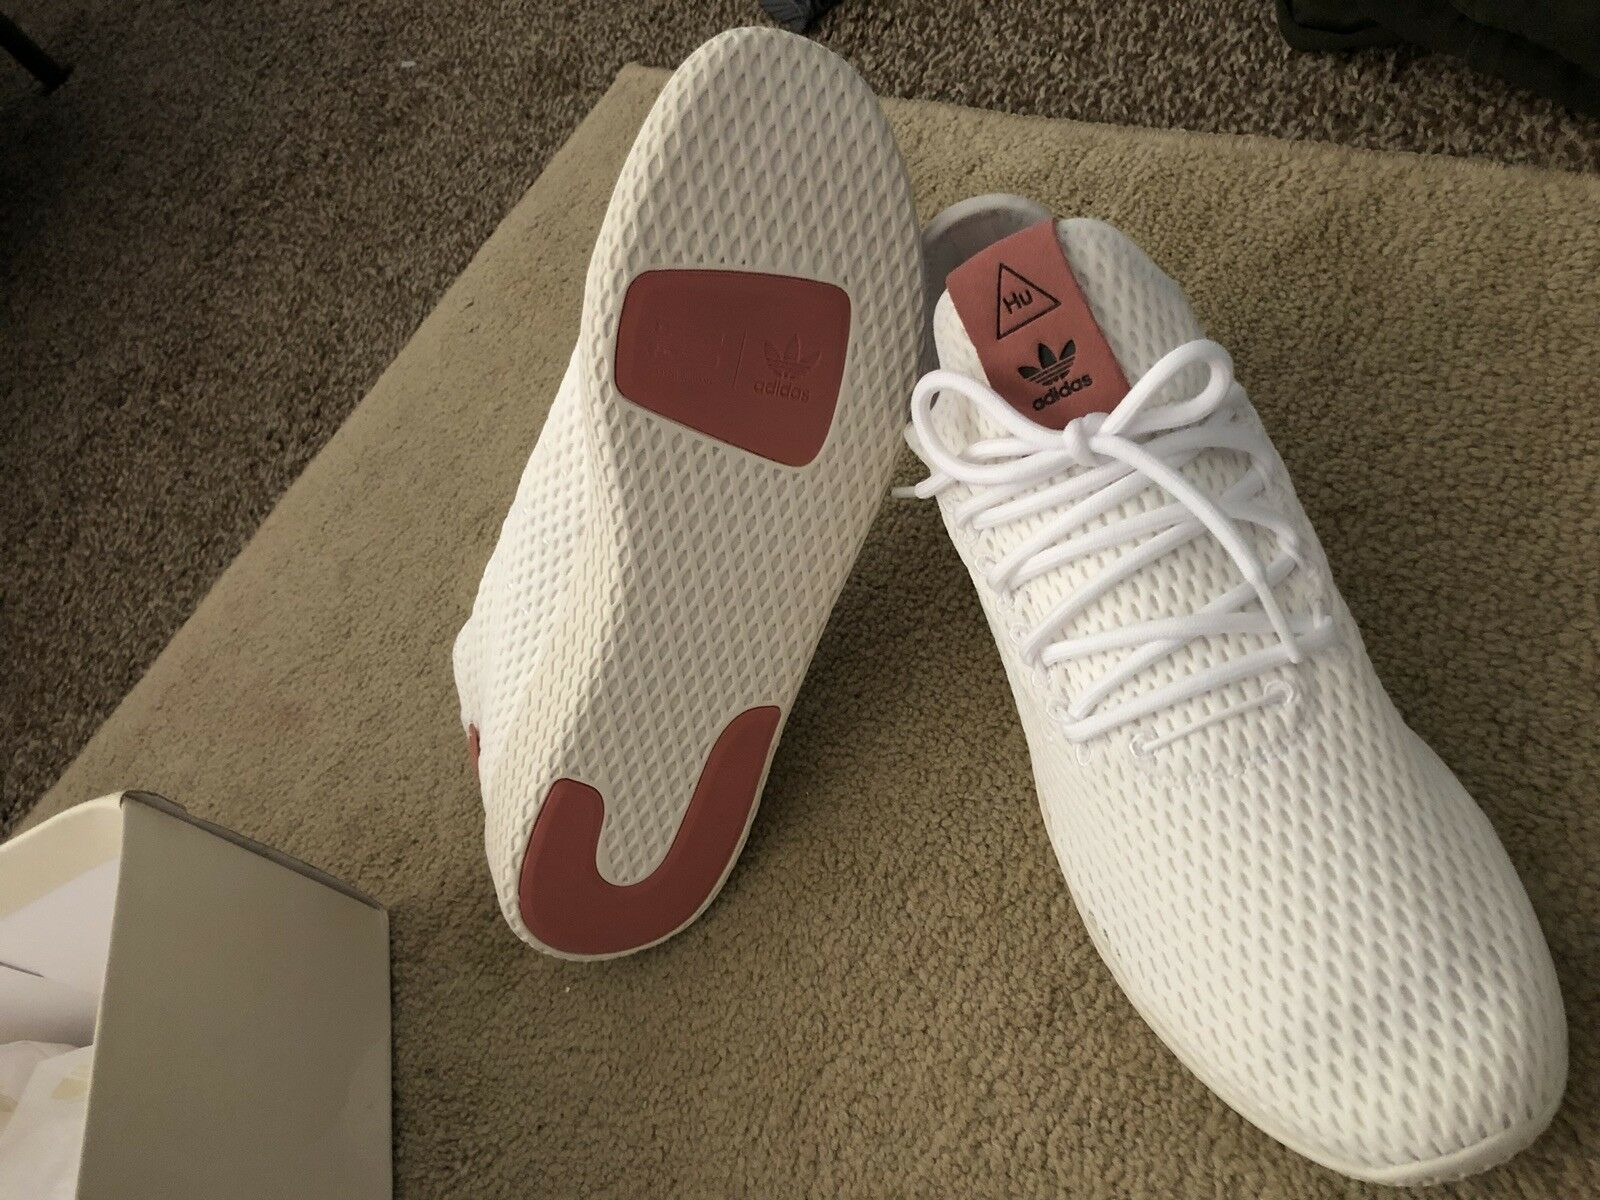 nouvelle foi foi nouvelle adidas originaux pharrell williams au tennis hu